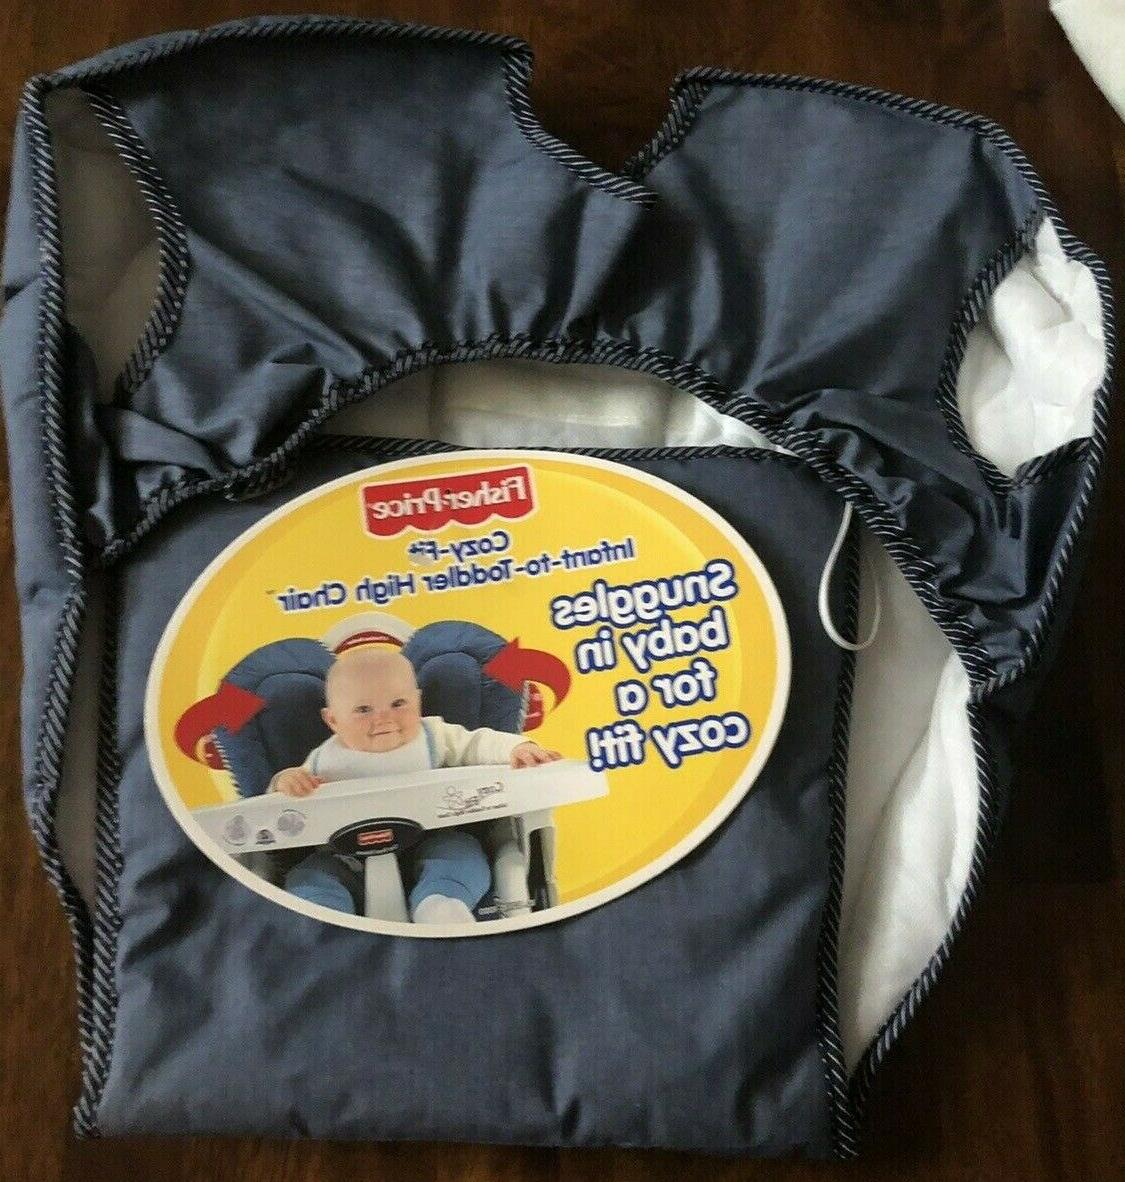 NEW INFANT-TO-TODDLER HIGH CUSHION COVER